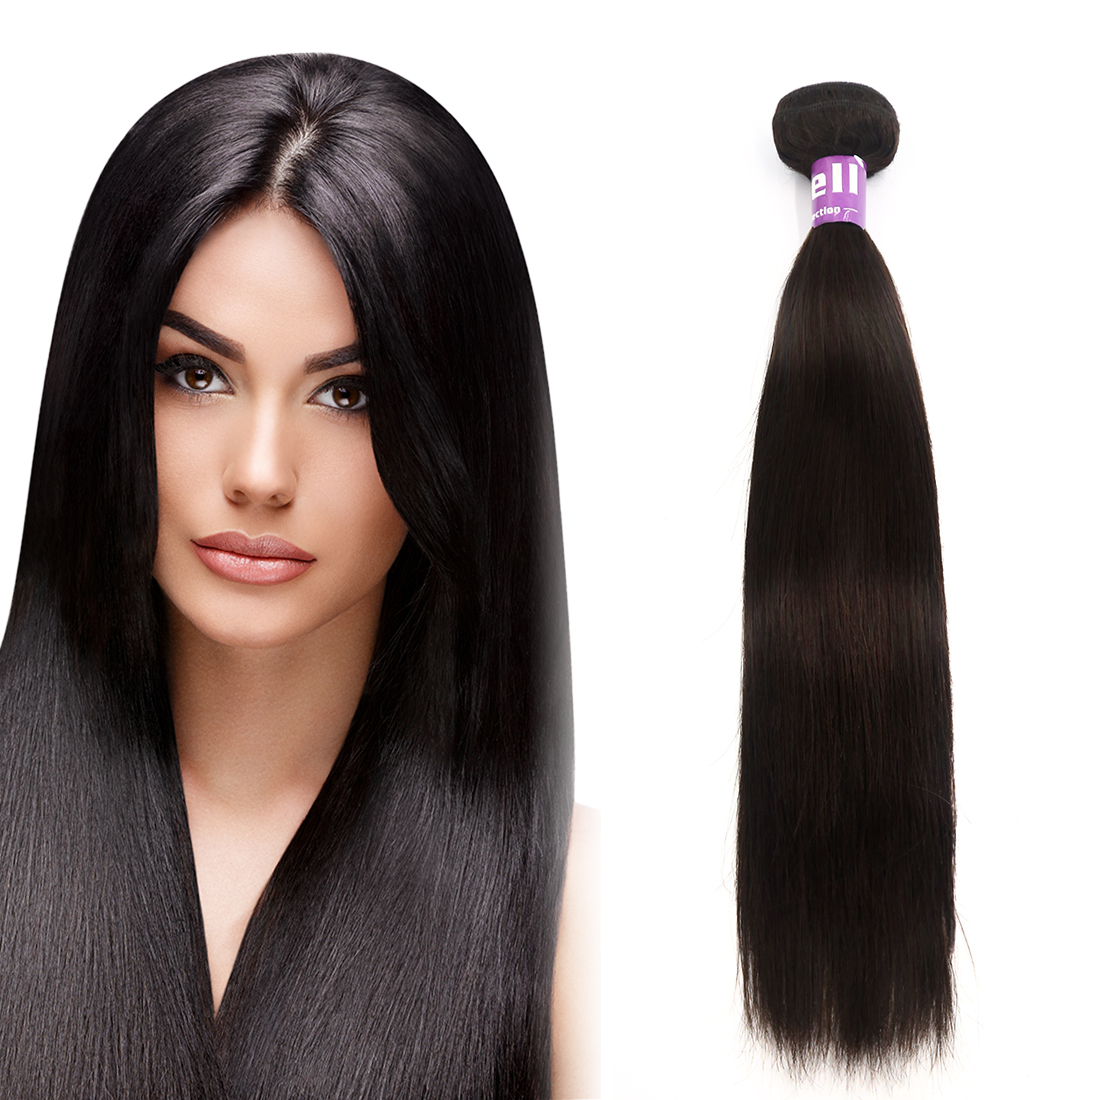 "Peruvian Virgin Silky Straight Human Hair Weave Extensions 7A 26"" 1 Bundle"